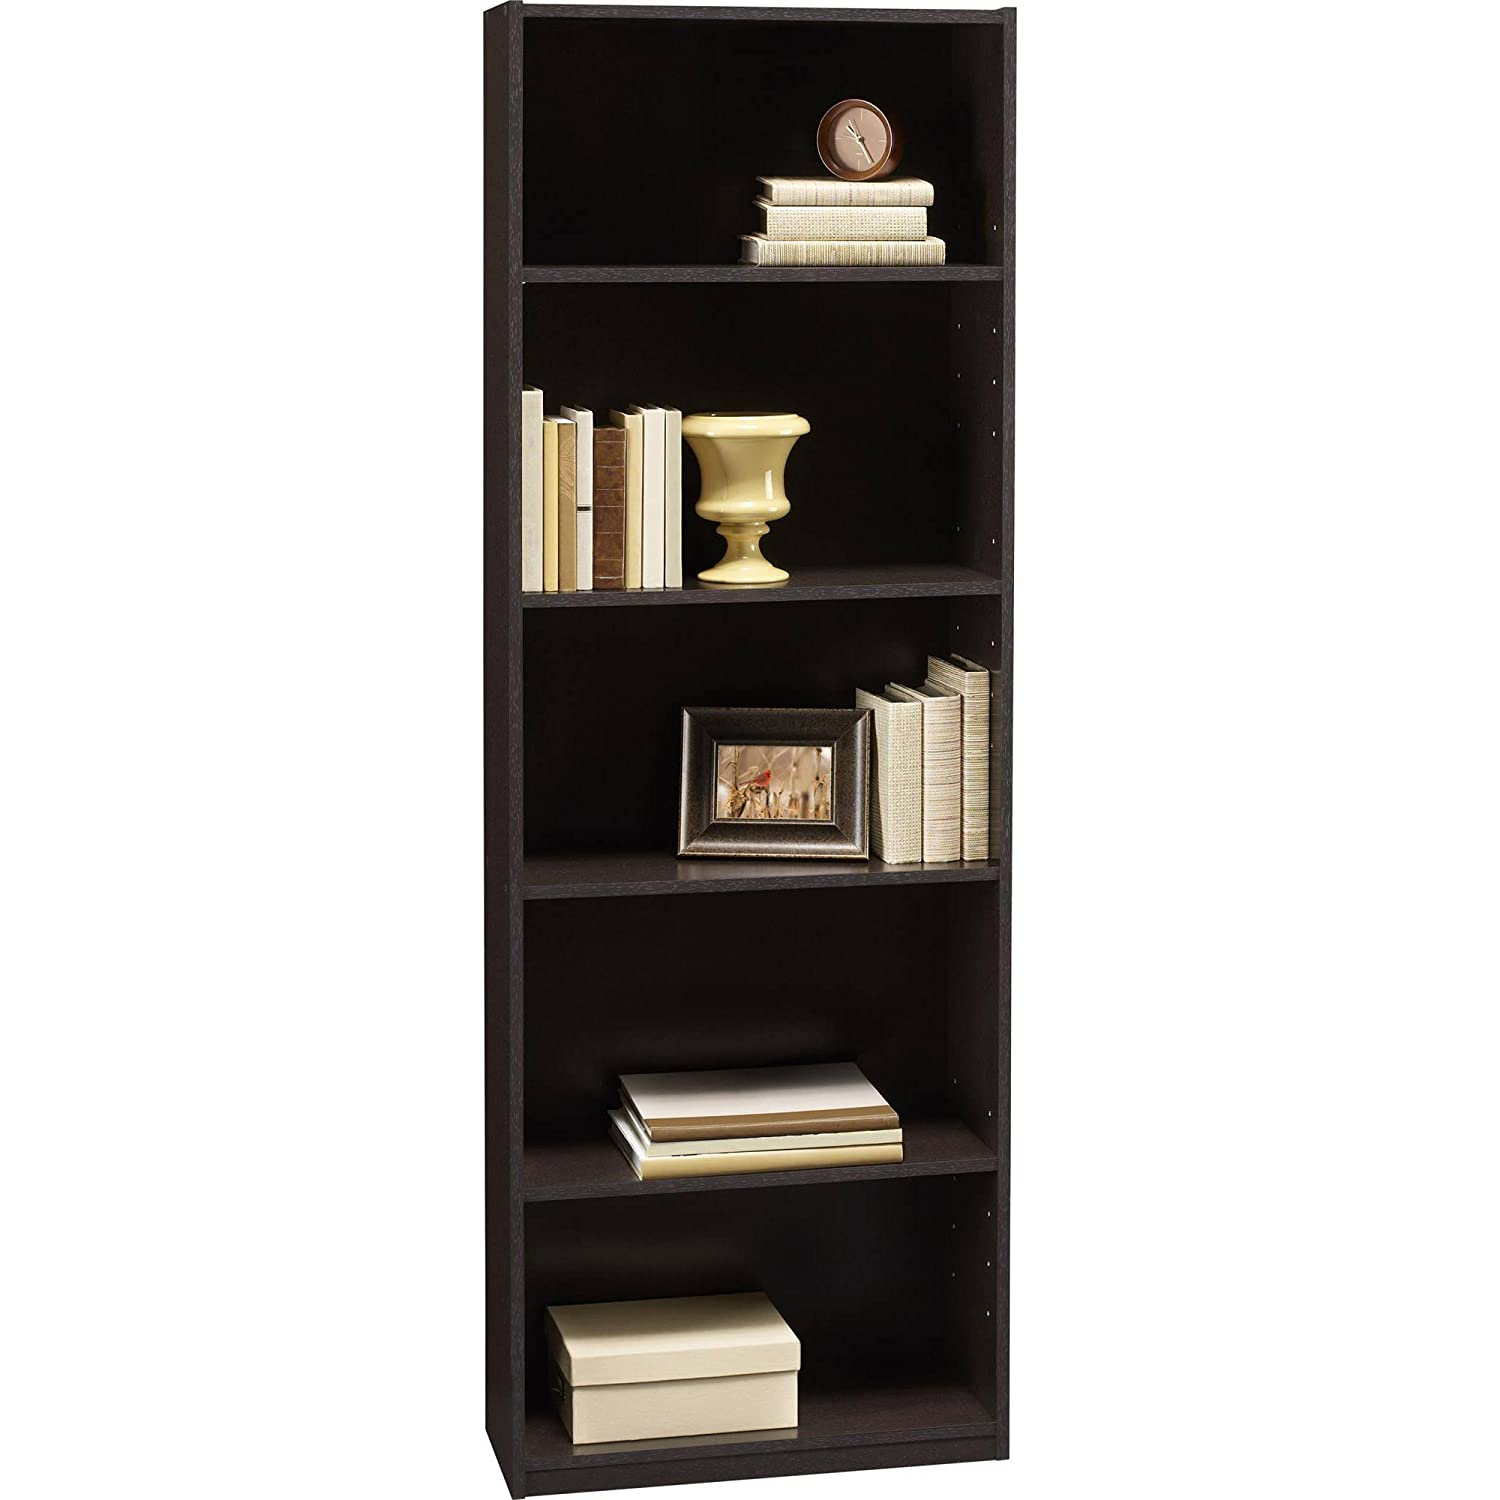 Luxury 2 Shelf Bookcase Black